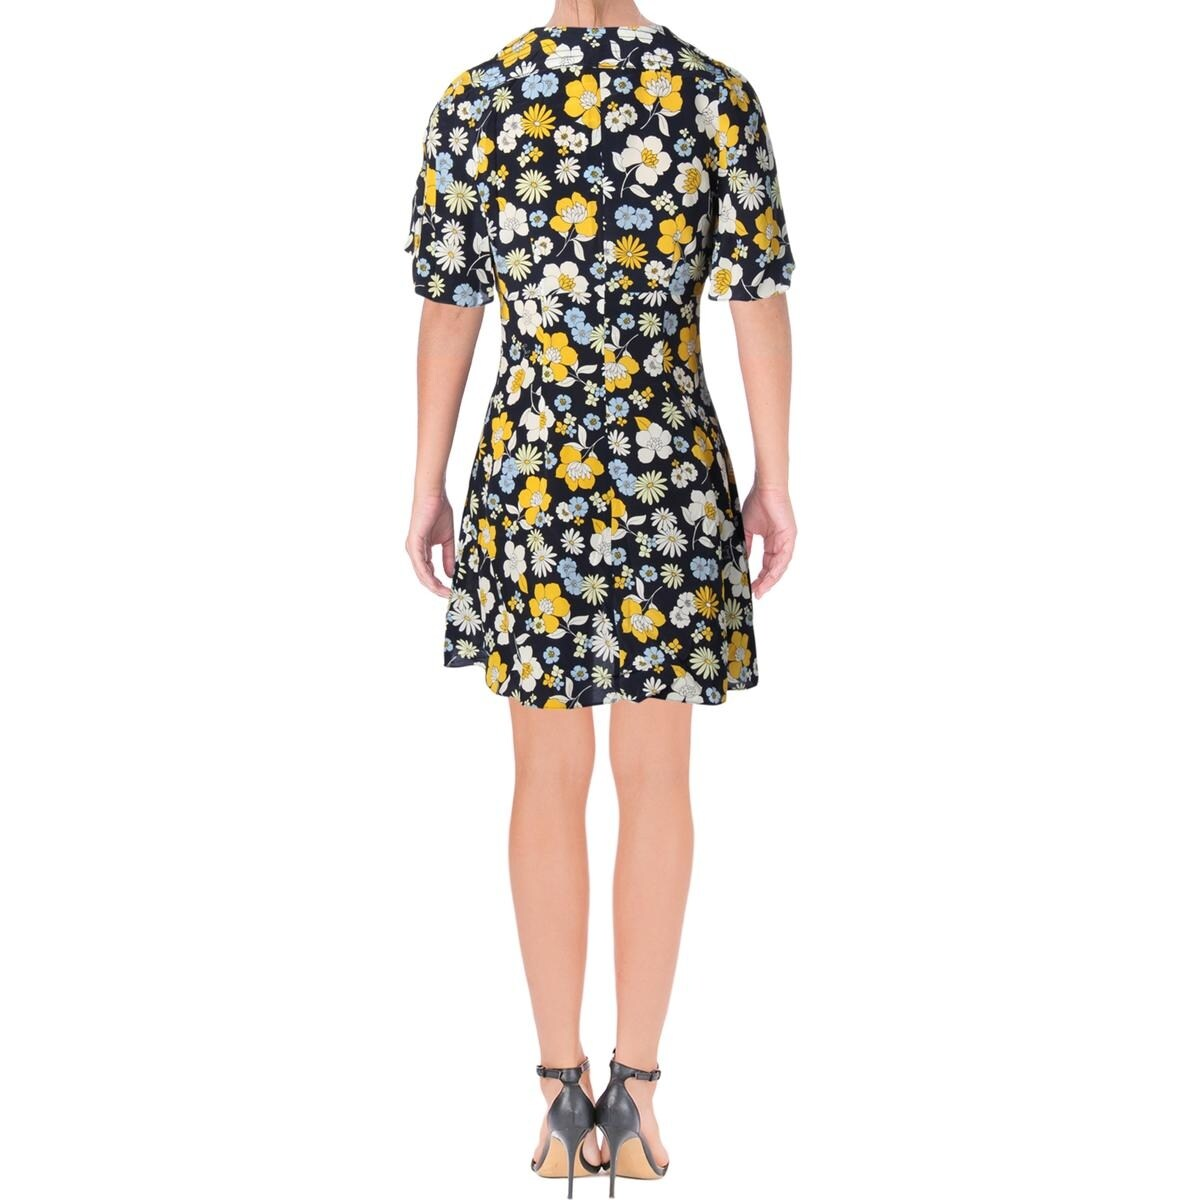 52985dbeeaab7 Shop Juicy Couture Black Label Womens Casual Dress Silk Floral Print - 4 -  Free Shipping On Orders Over $45 - Overstock - 23476269